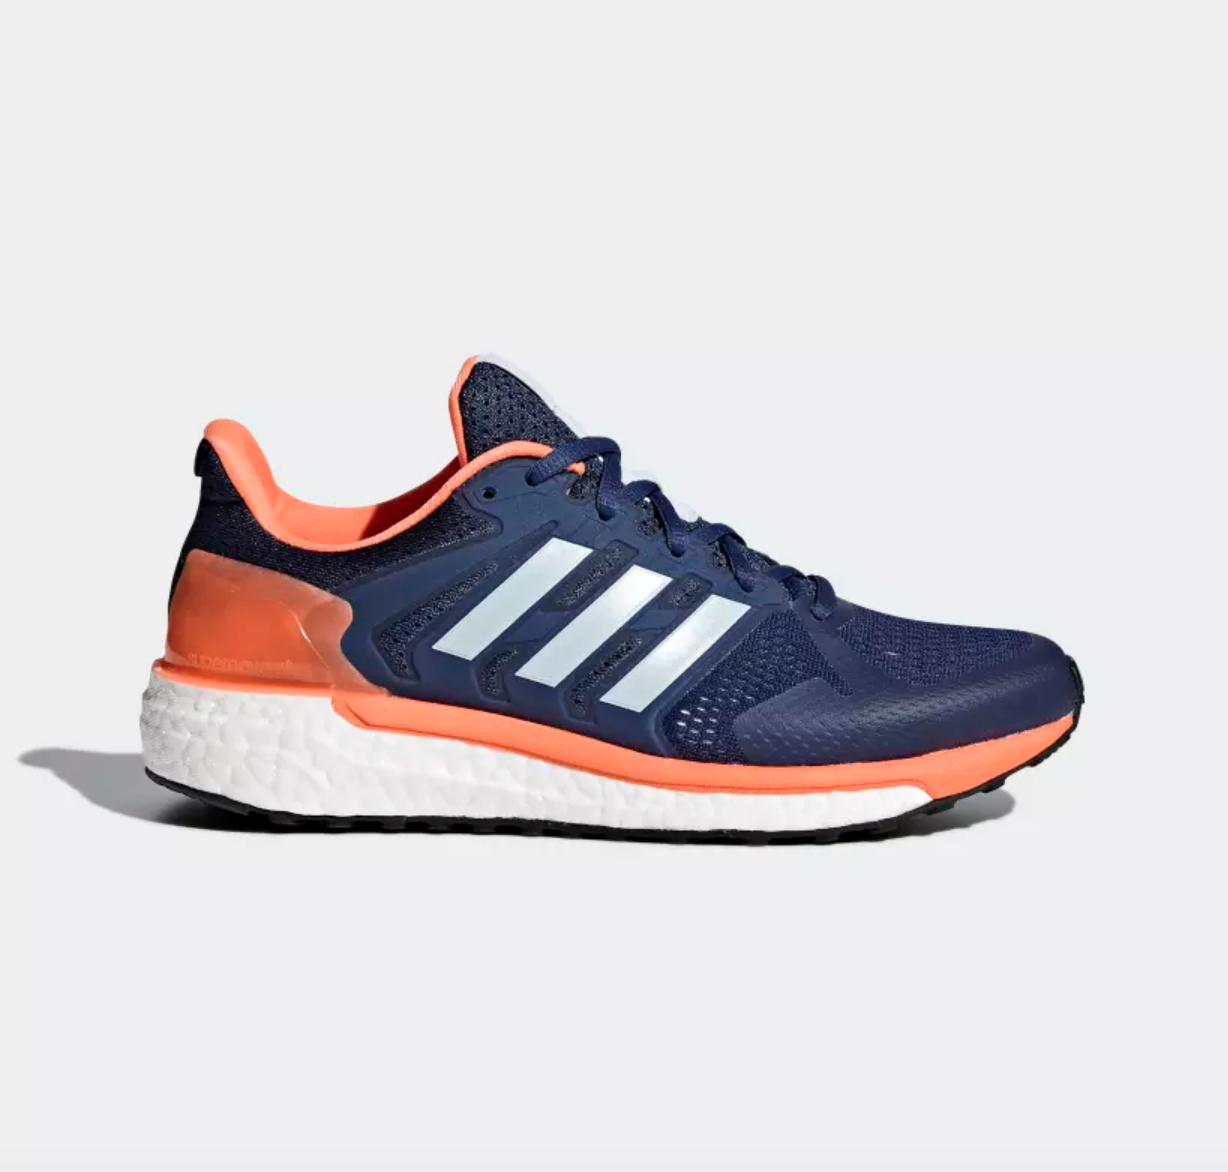 4a47fb87c1f99 Score an Extra 30% off Adidas Sale Items